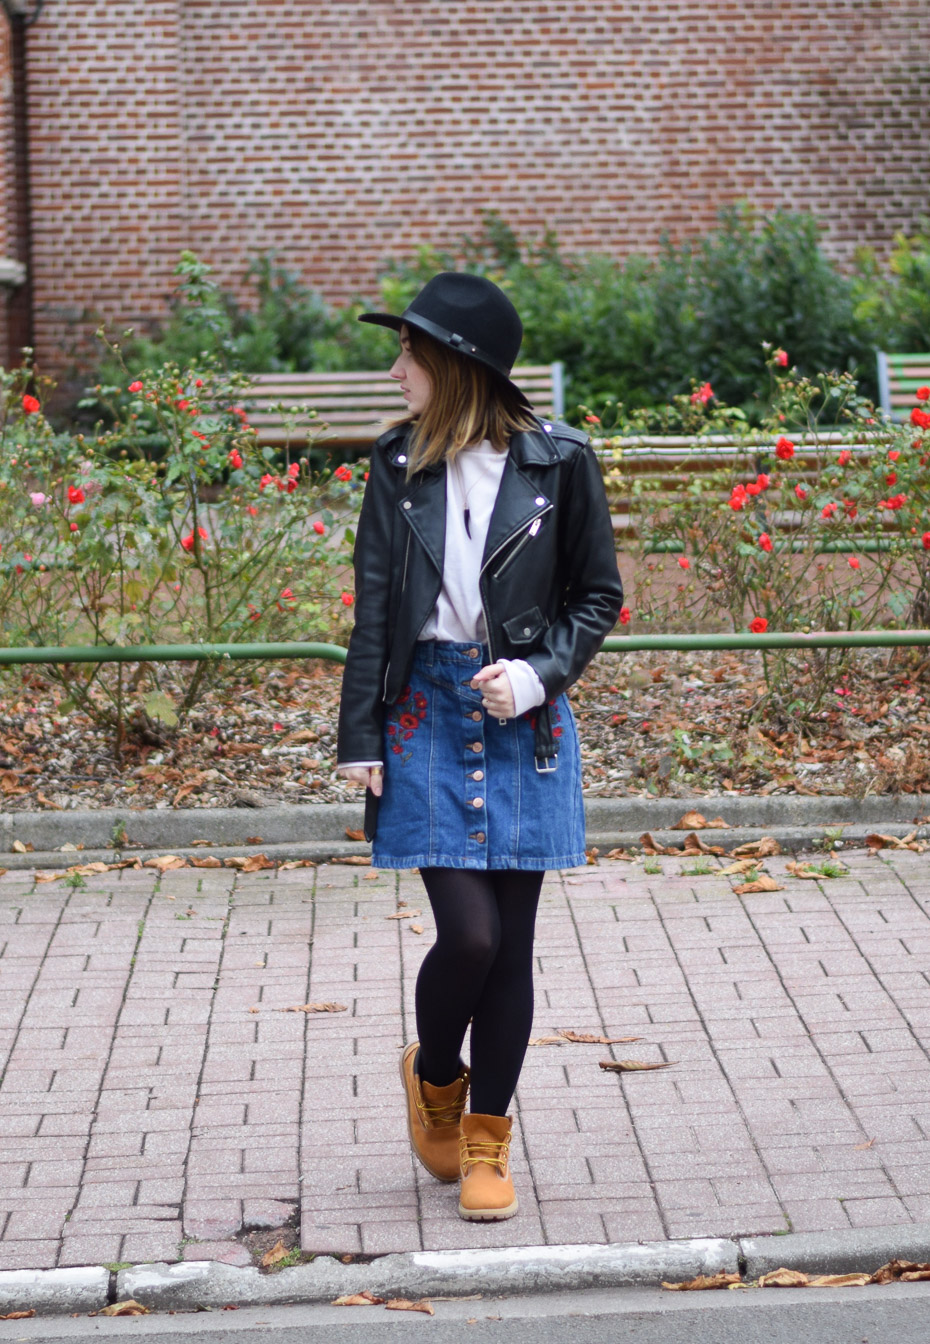 perfecto zara panama h&m outfit look fall